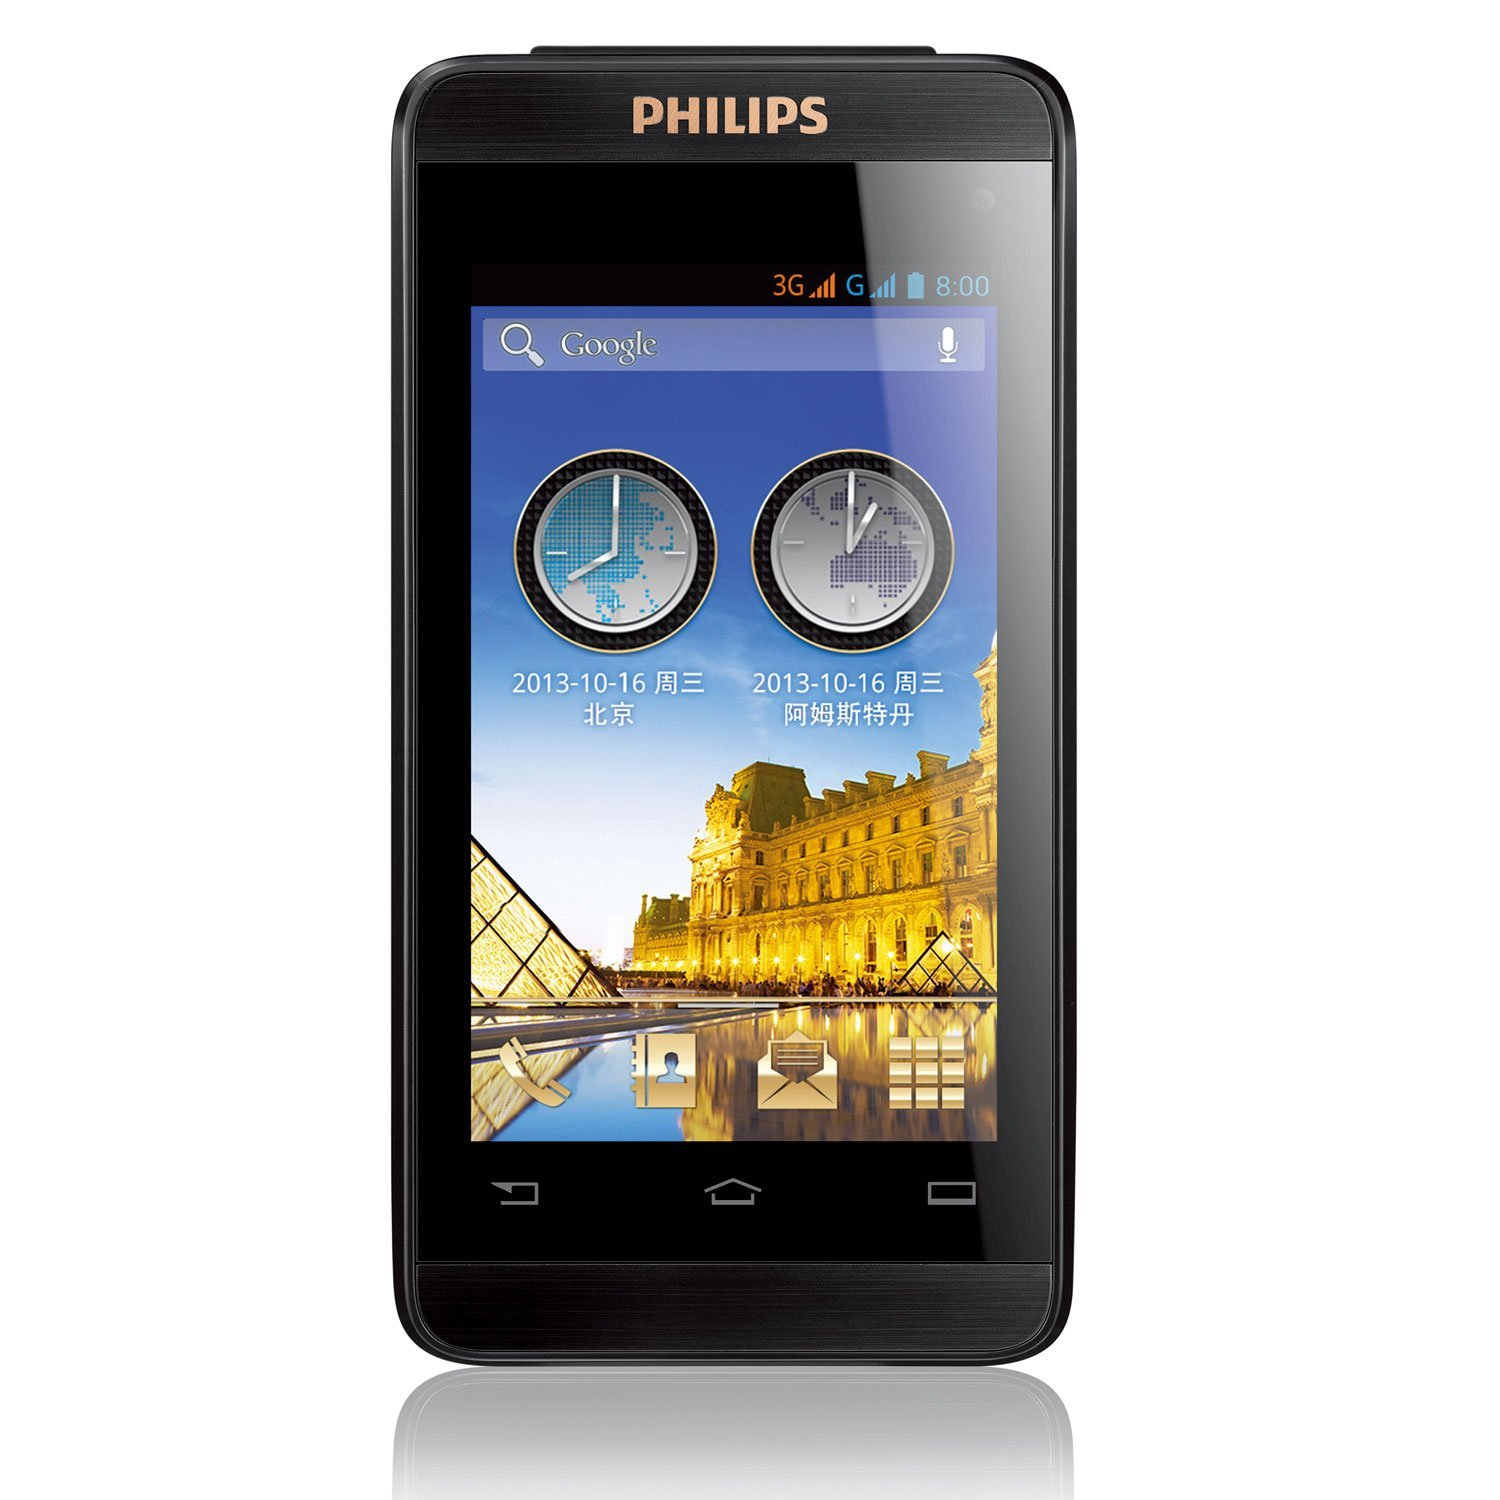 Mobile Communications PHILIPS Philips W9588 quad-core flip double-screen dual-mode dual card dual st